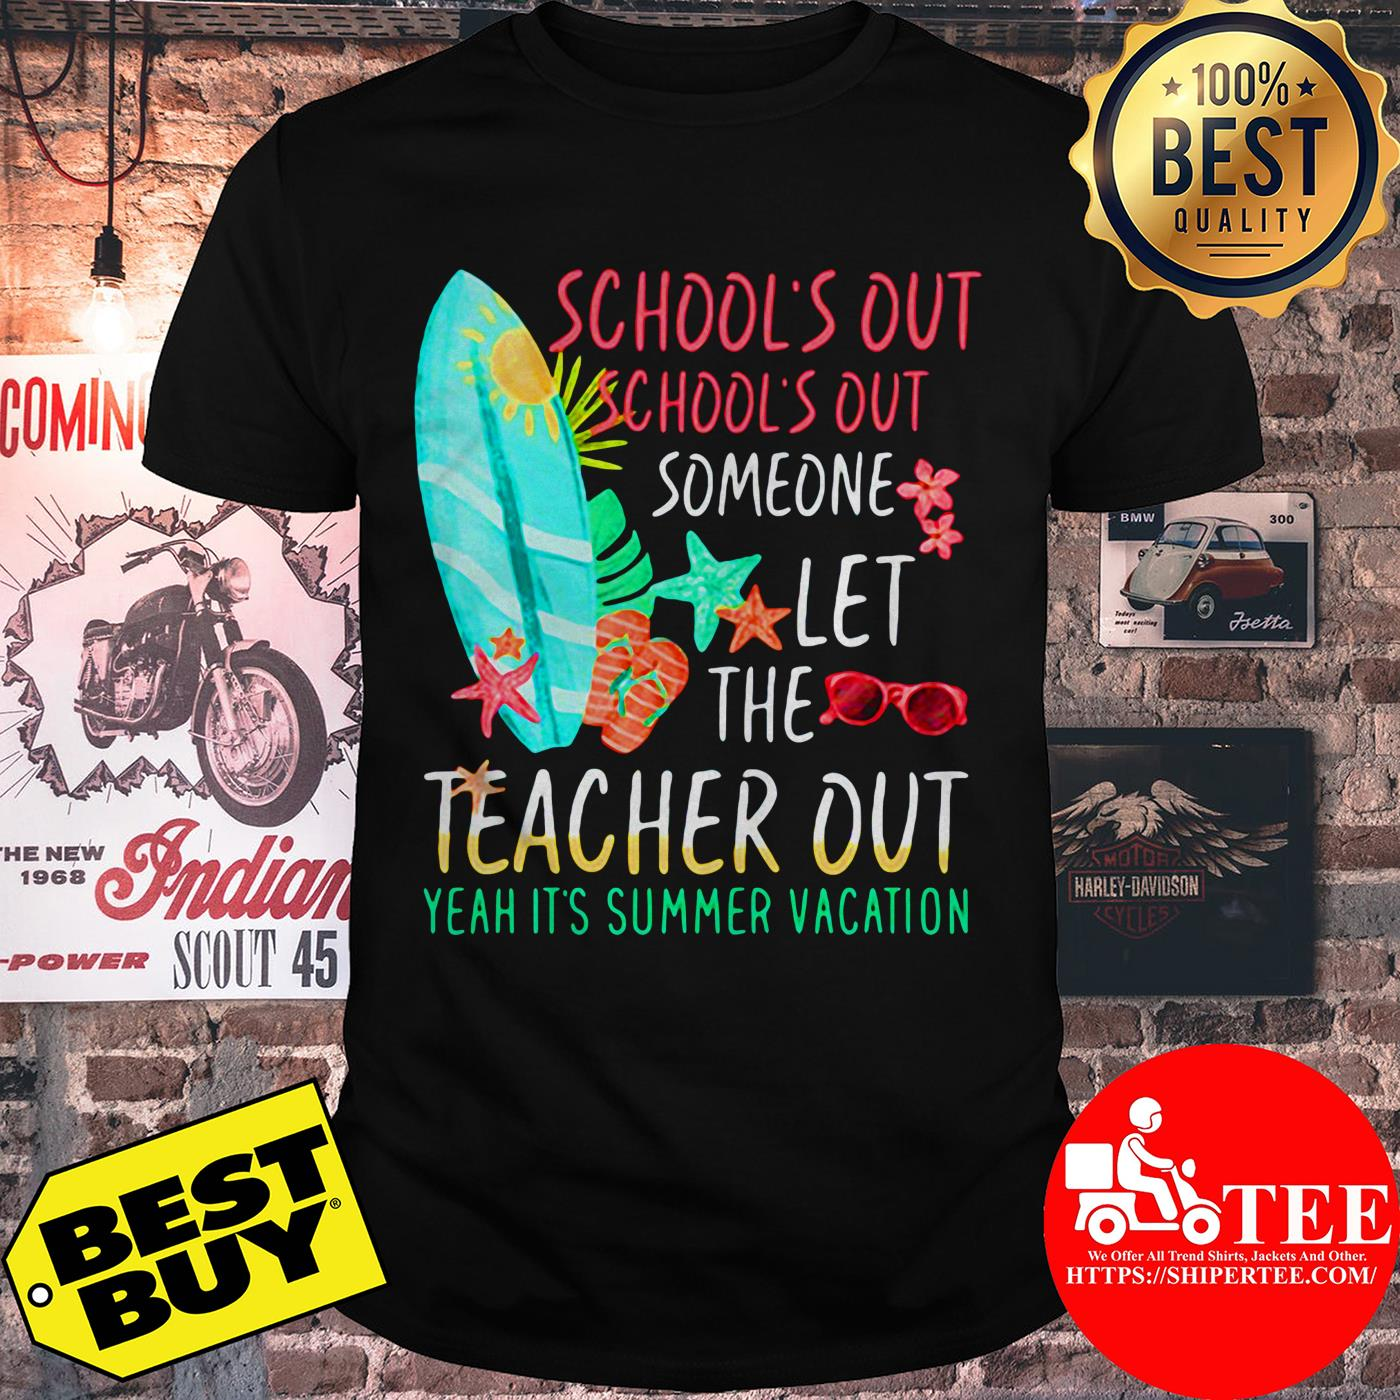 School's Out School's Out Someone Let The Teacher Out Yeah It's Summer Vacation Shirt